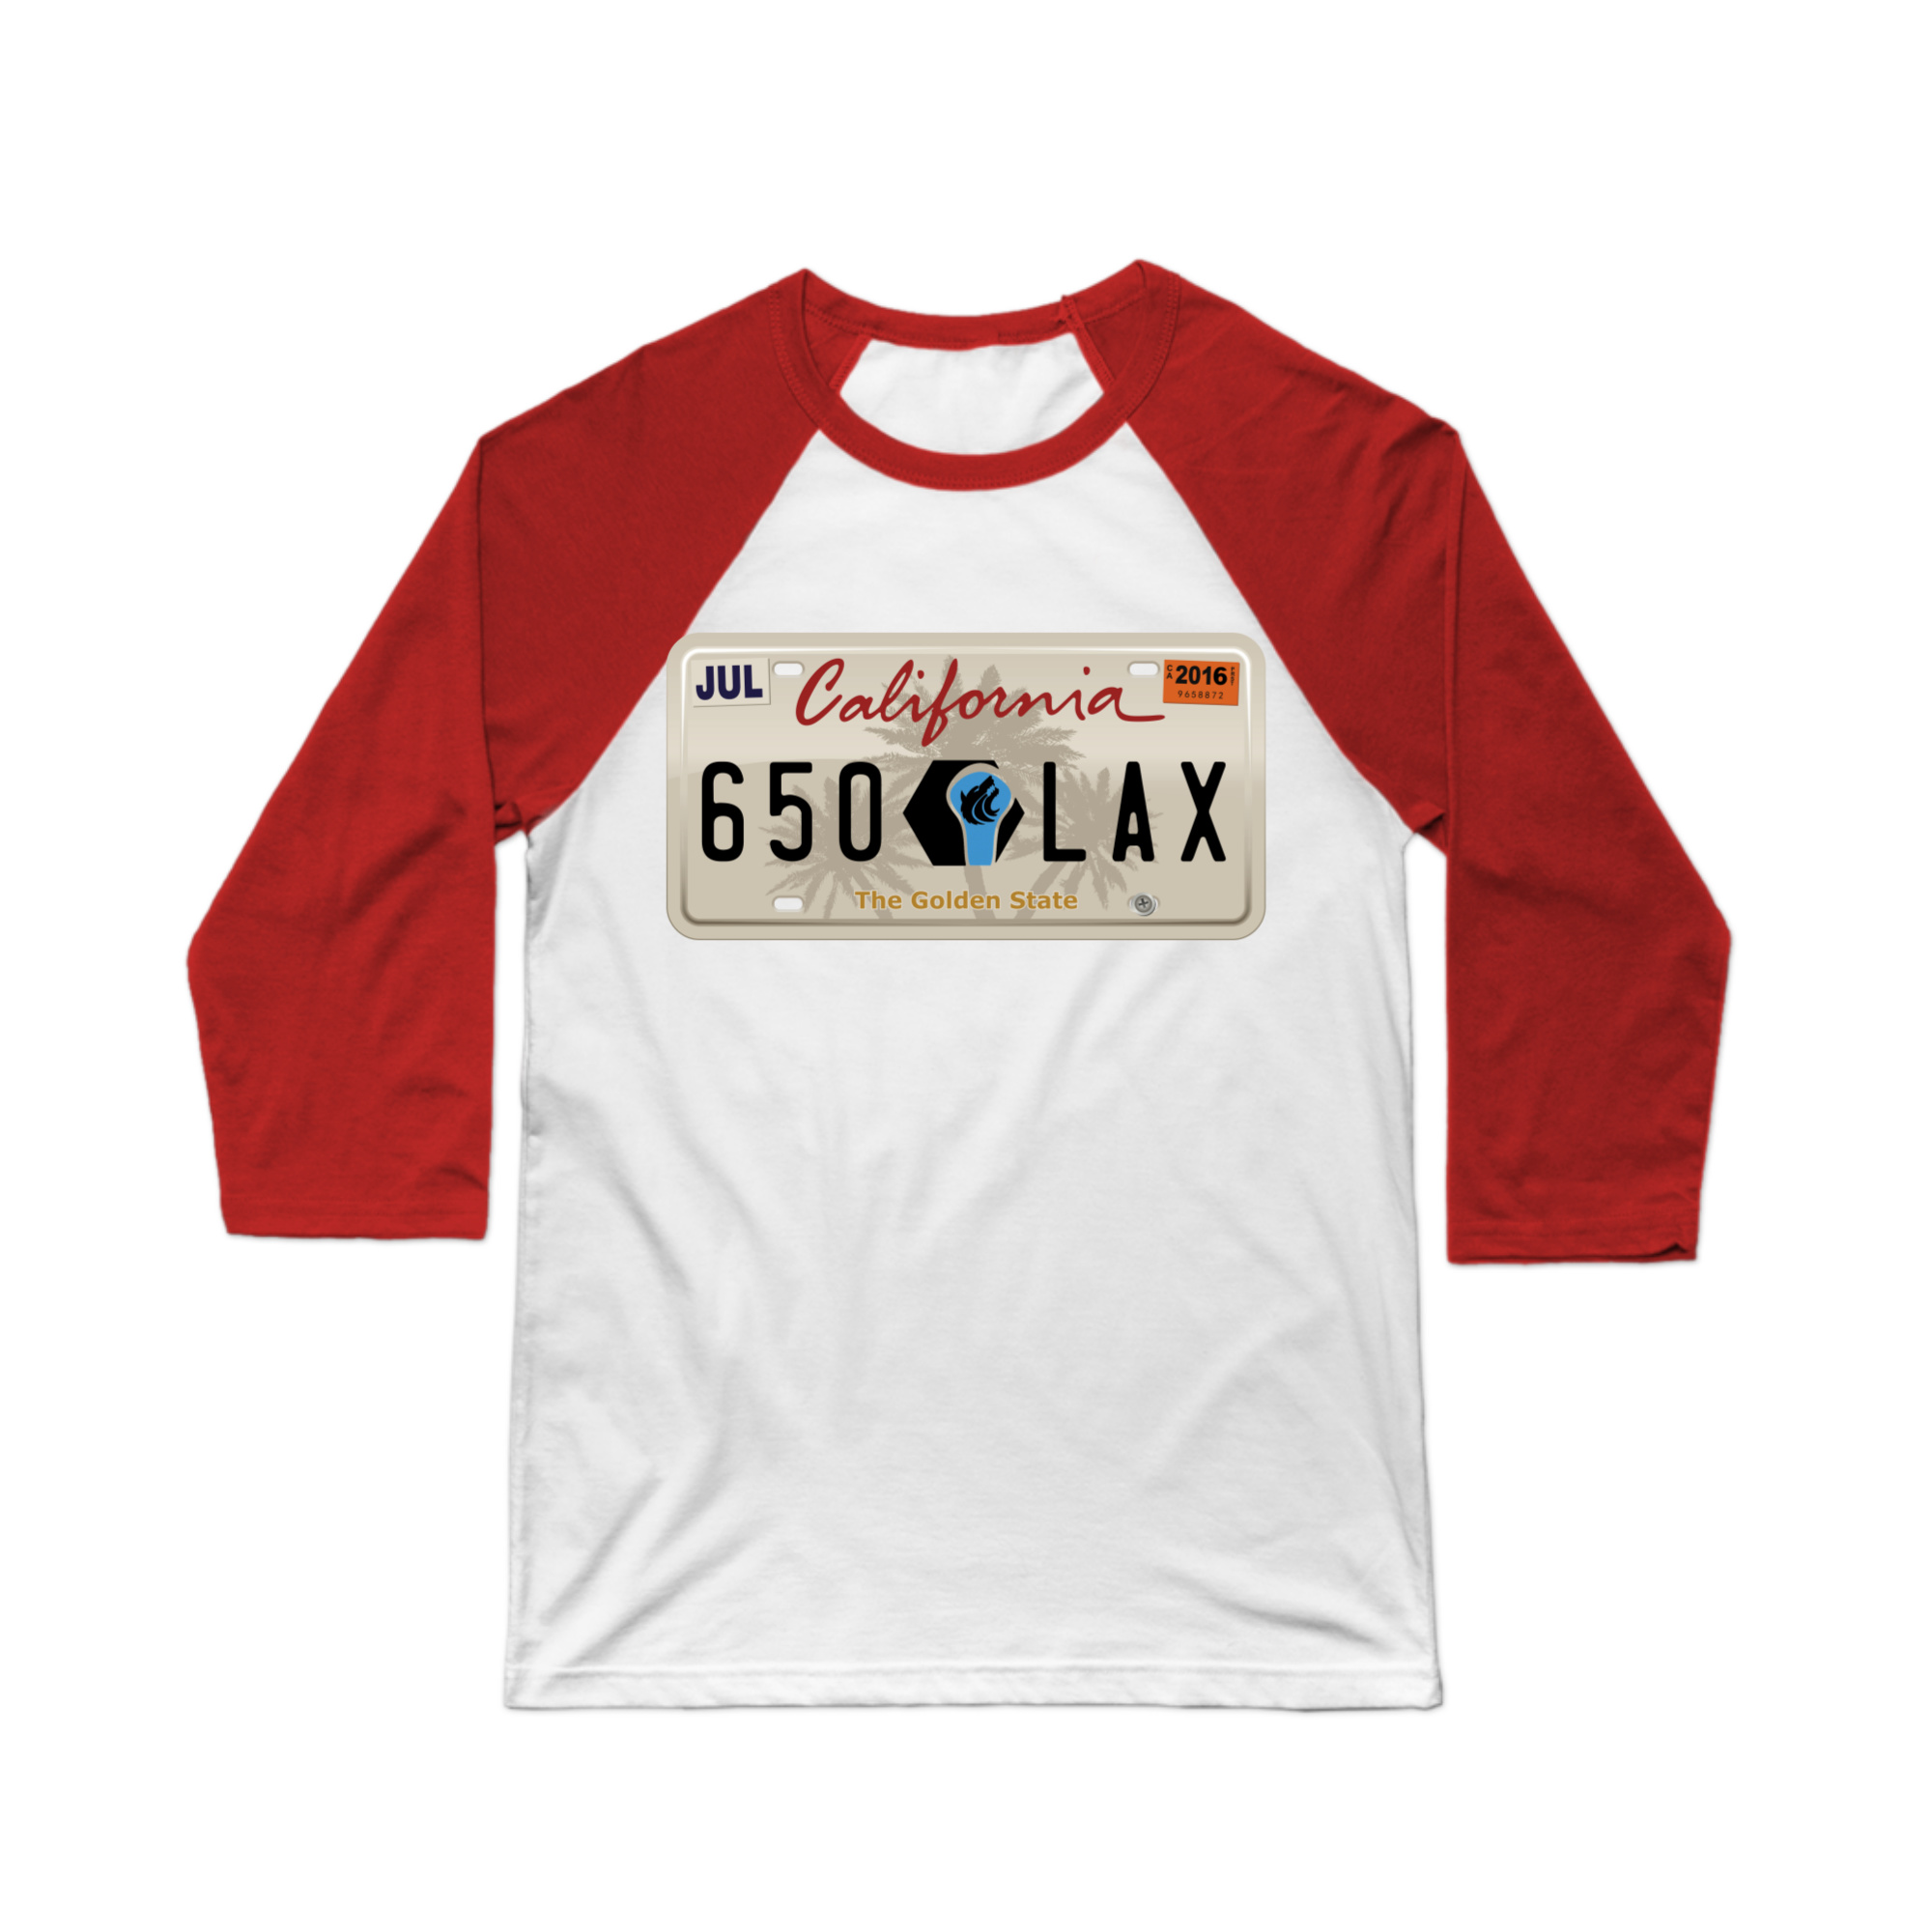 License to Lax California Baseball Tee